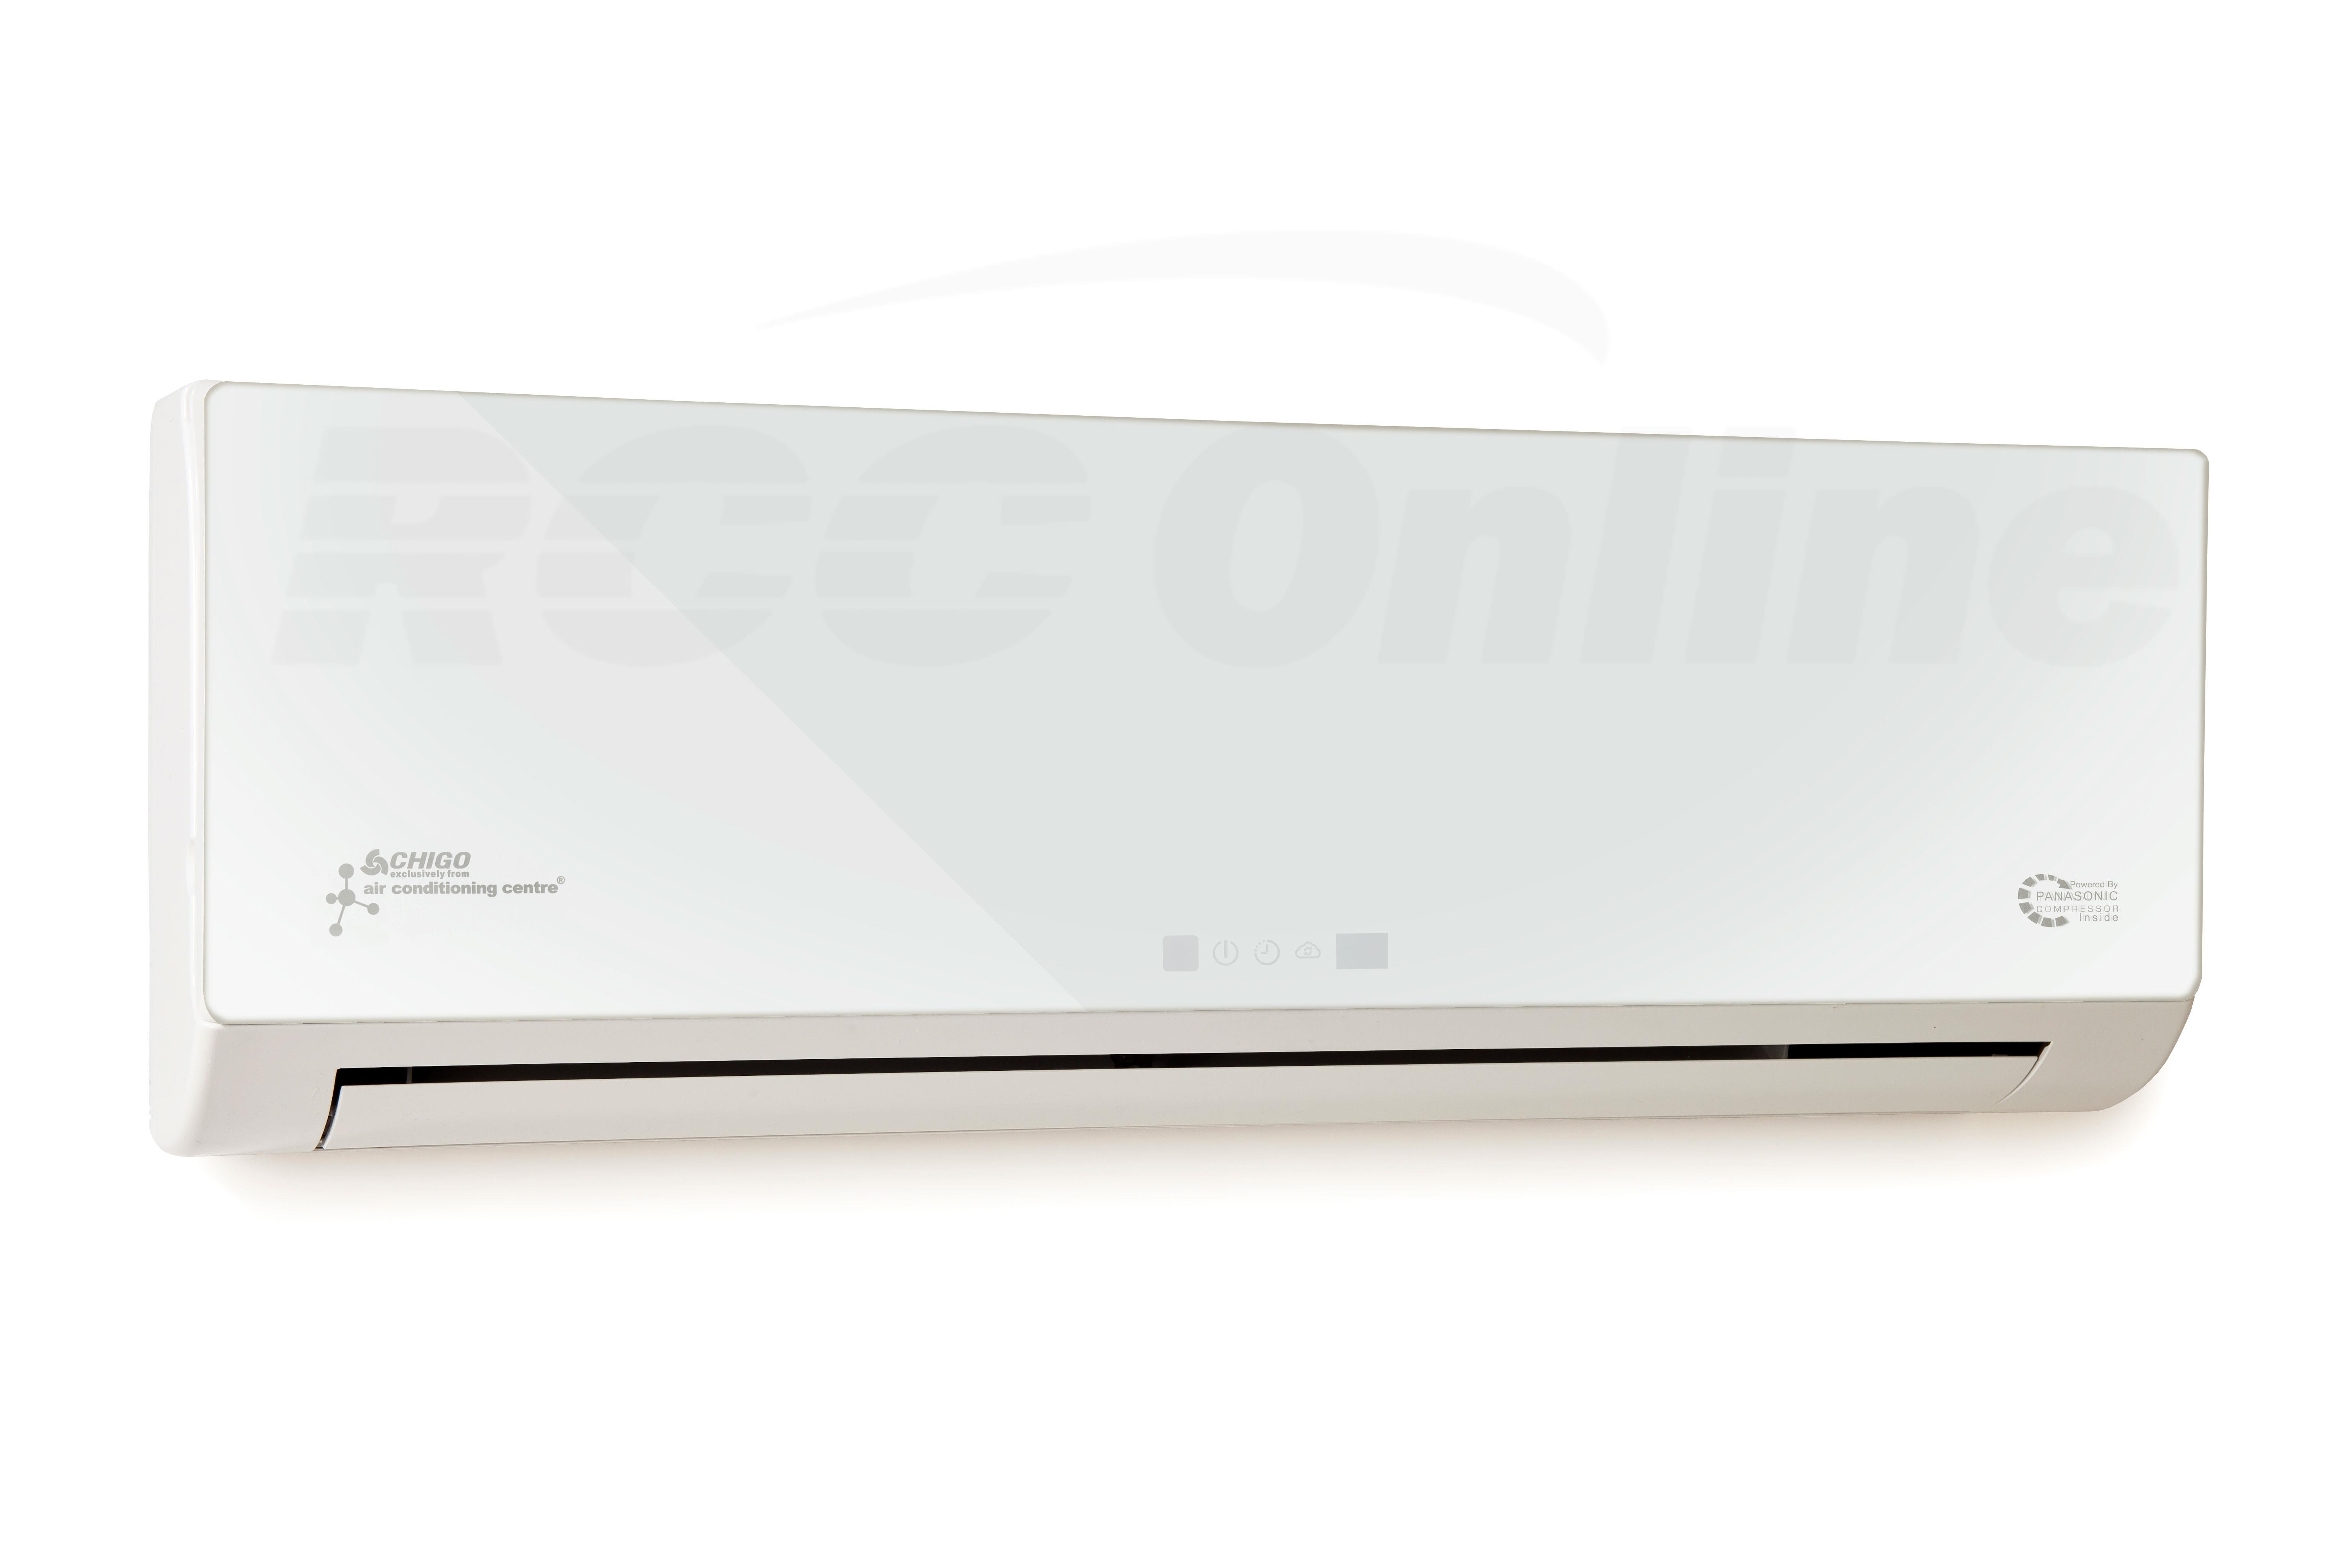 Kfr23 Iwx1c Panasonic Powered Air Conditioner With Wifi